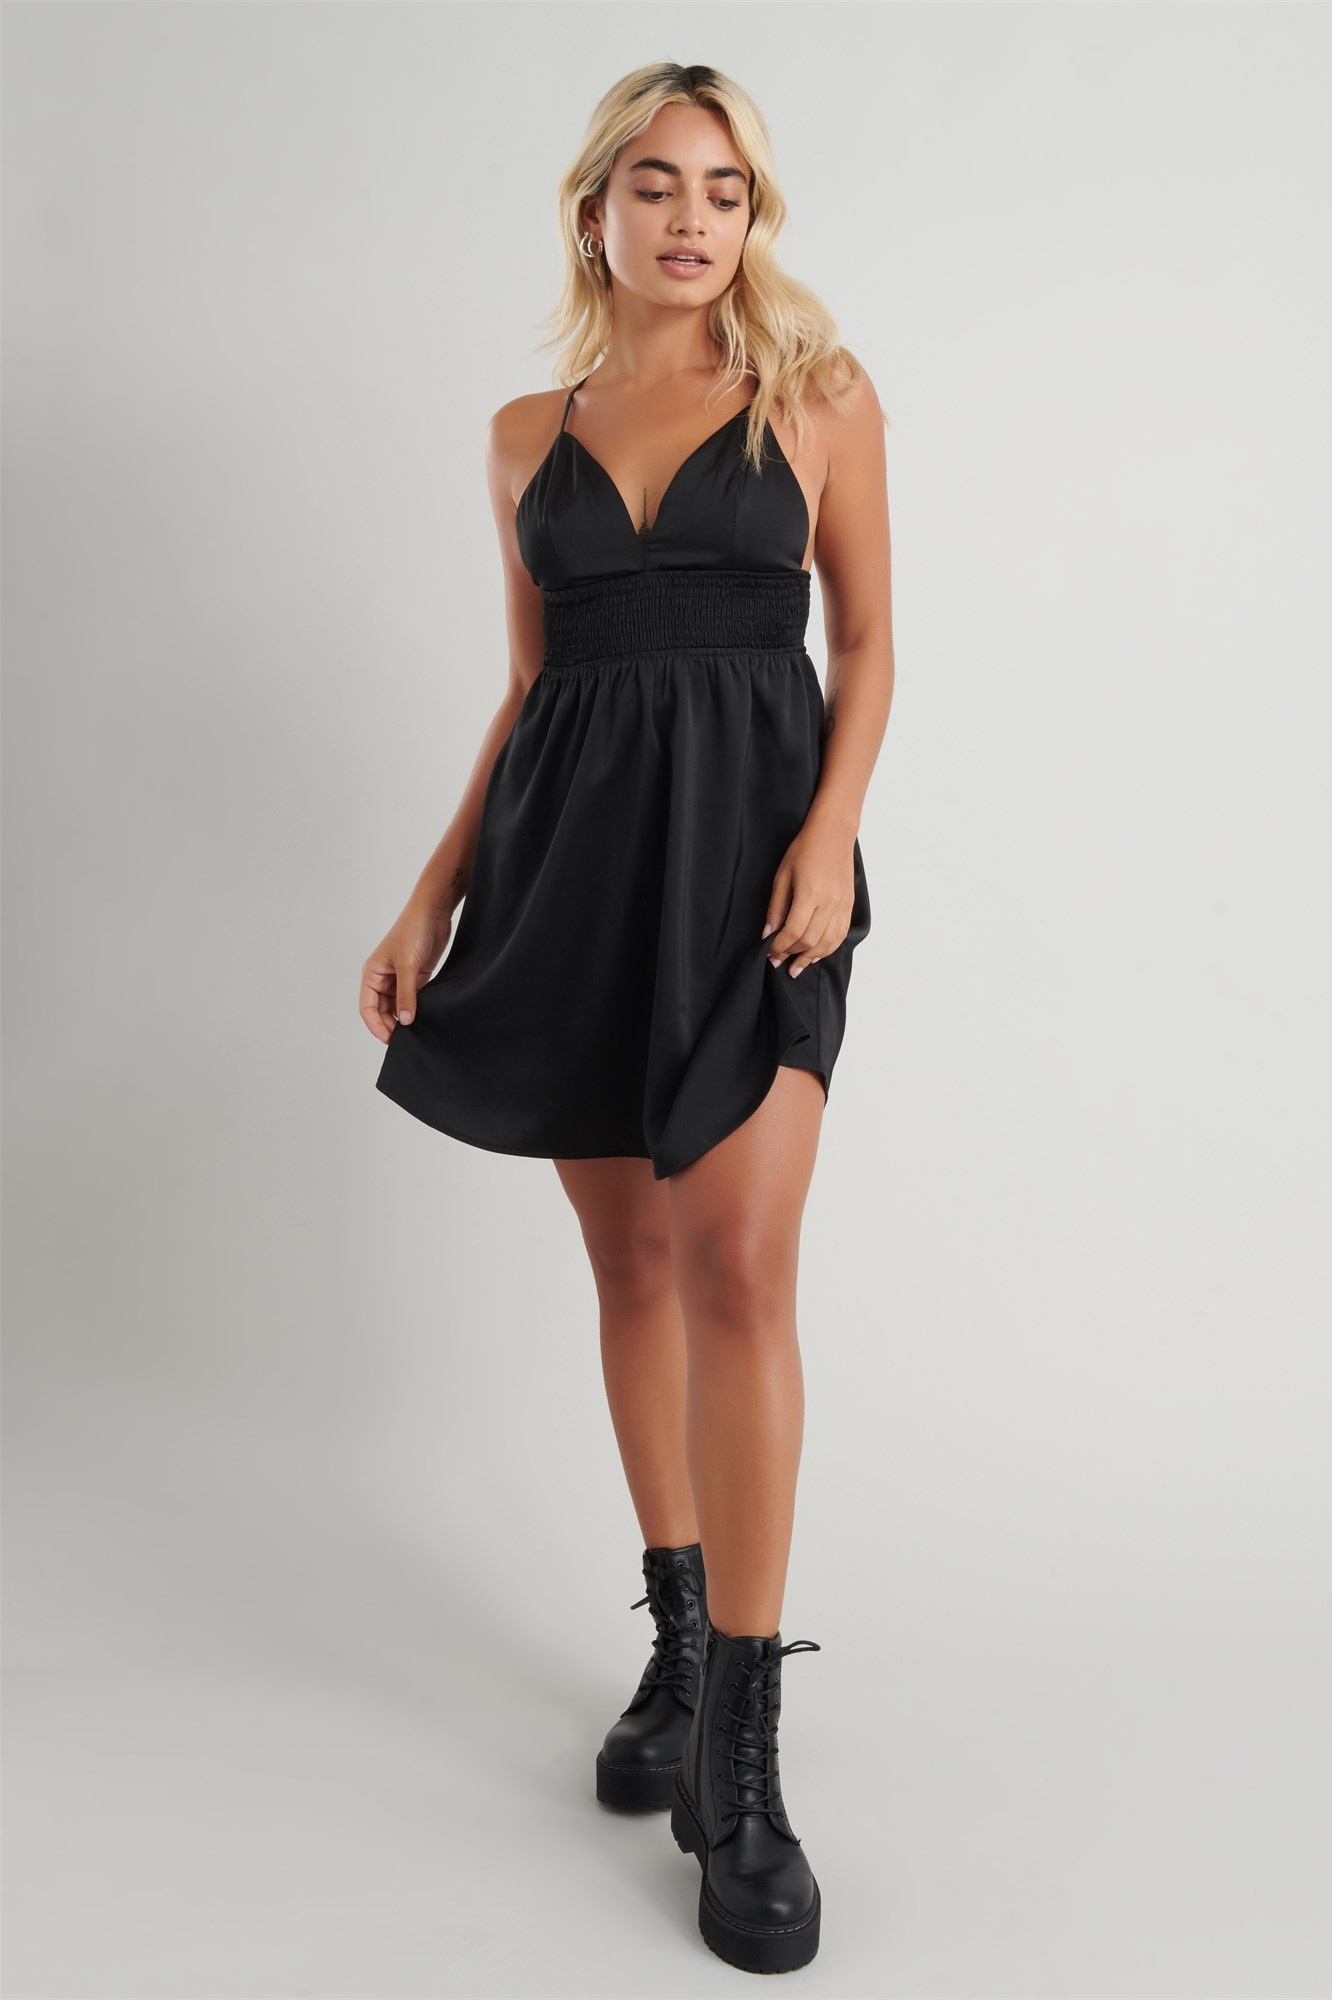 Image 3 of Satin Fit & Flare Dress